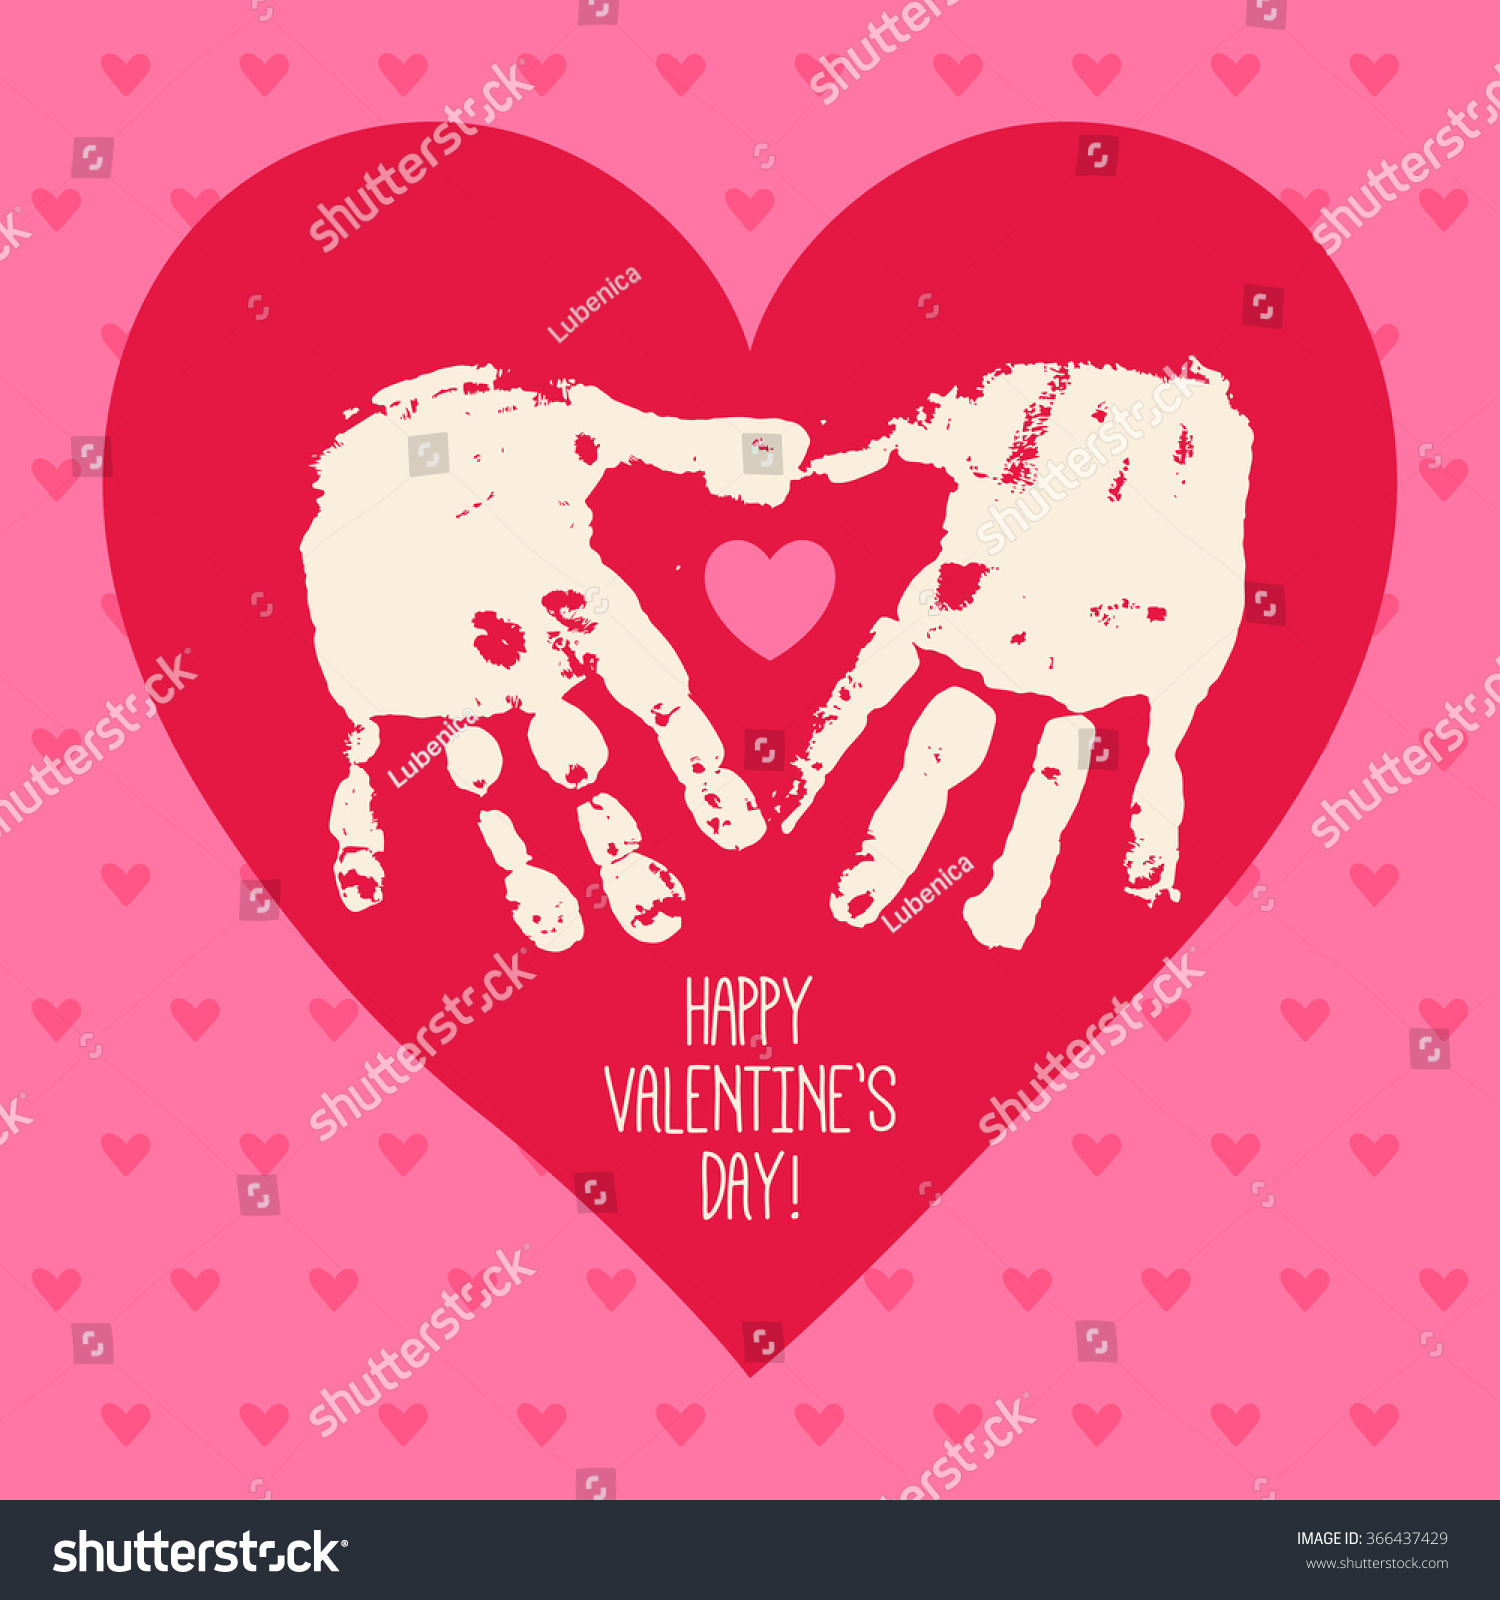 Happy Valentine S Day Card Design With Handprint Heart